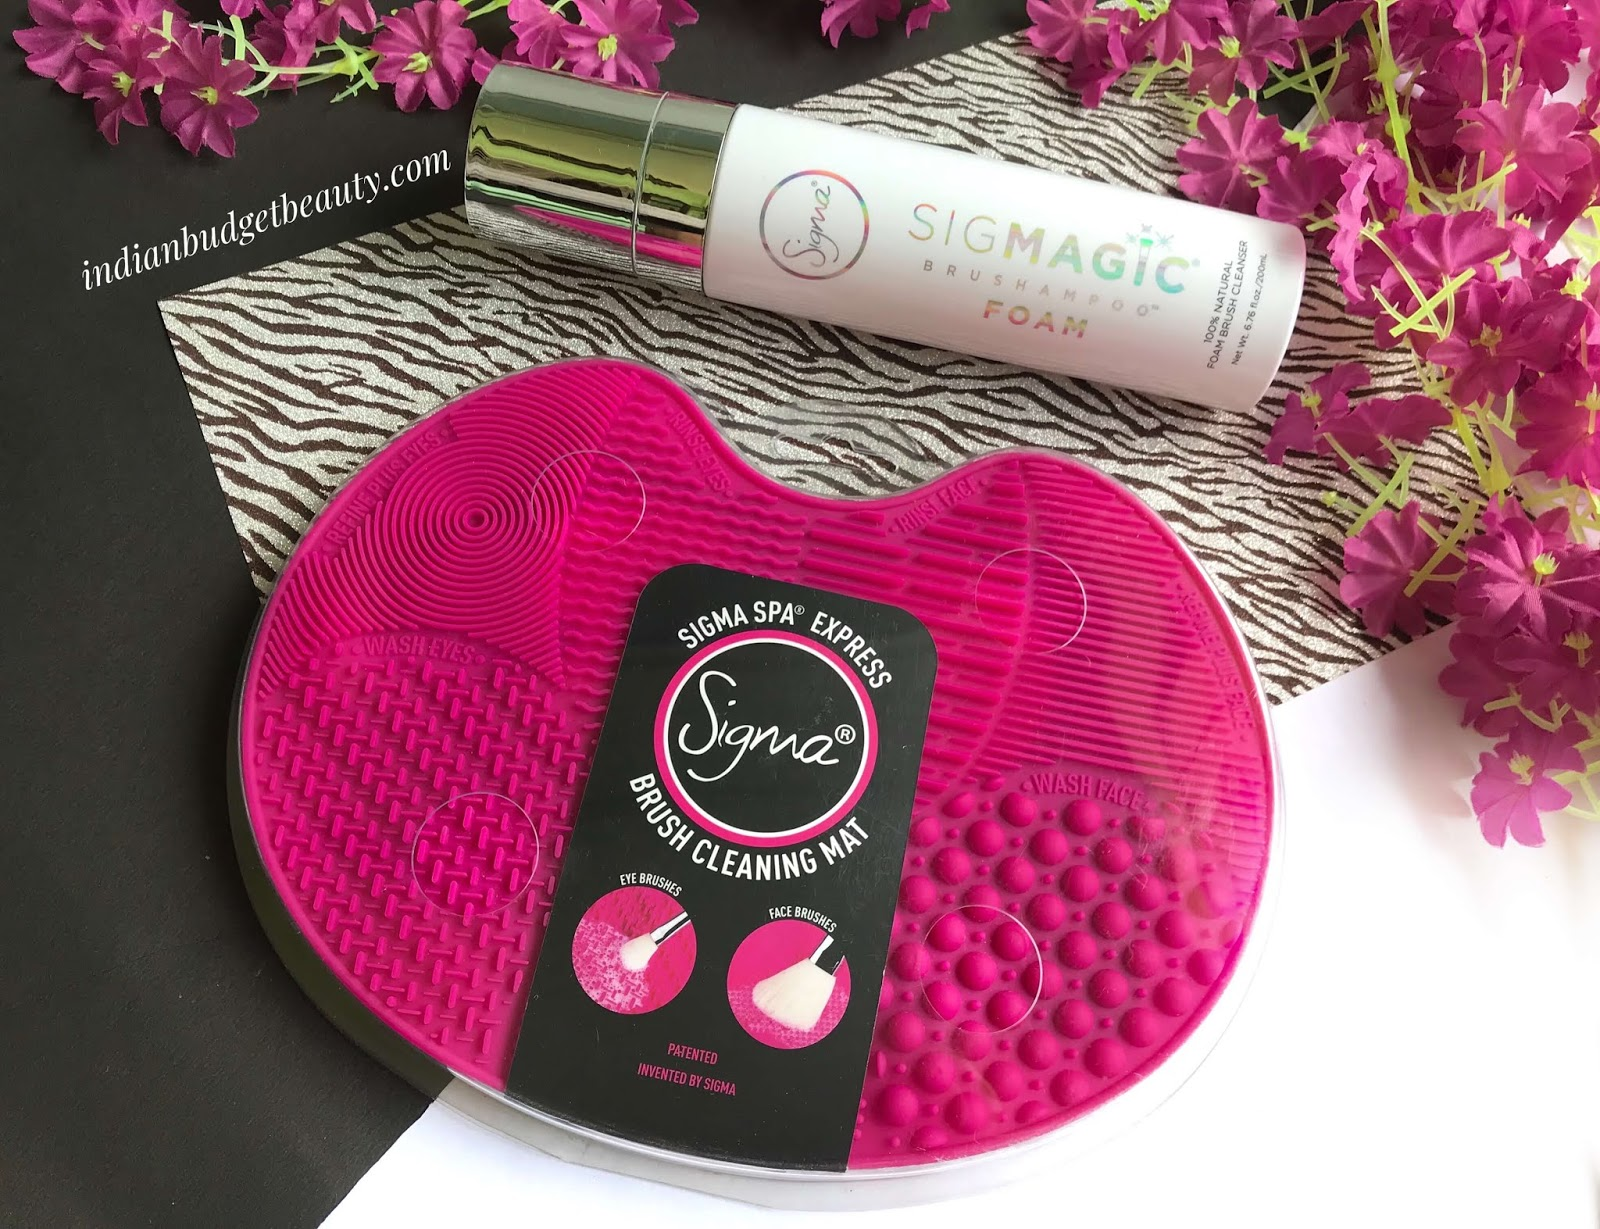 Sigma Beauty Affiliate Welcome Gift Makeup Brushes And